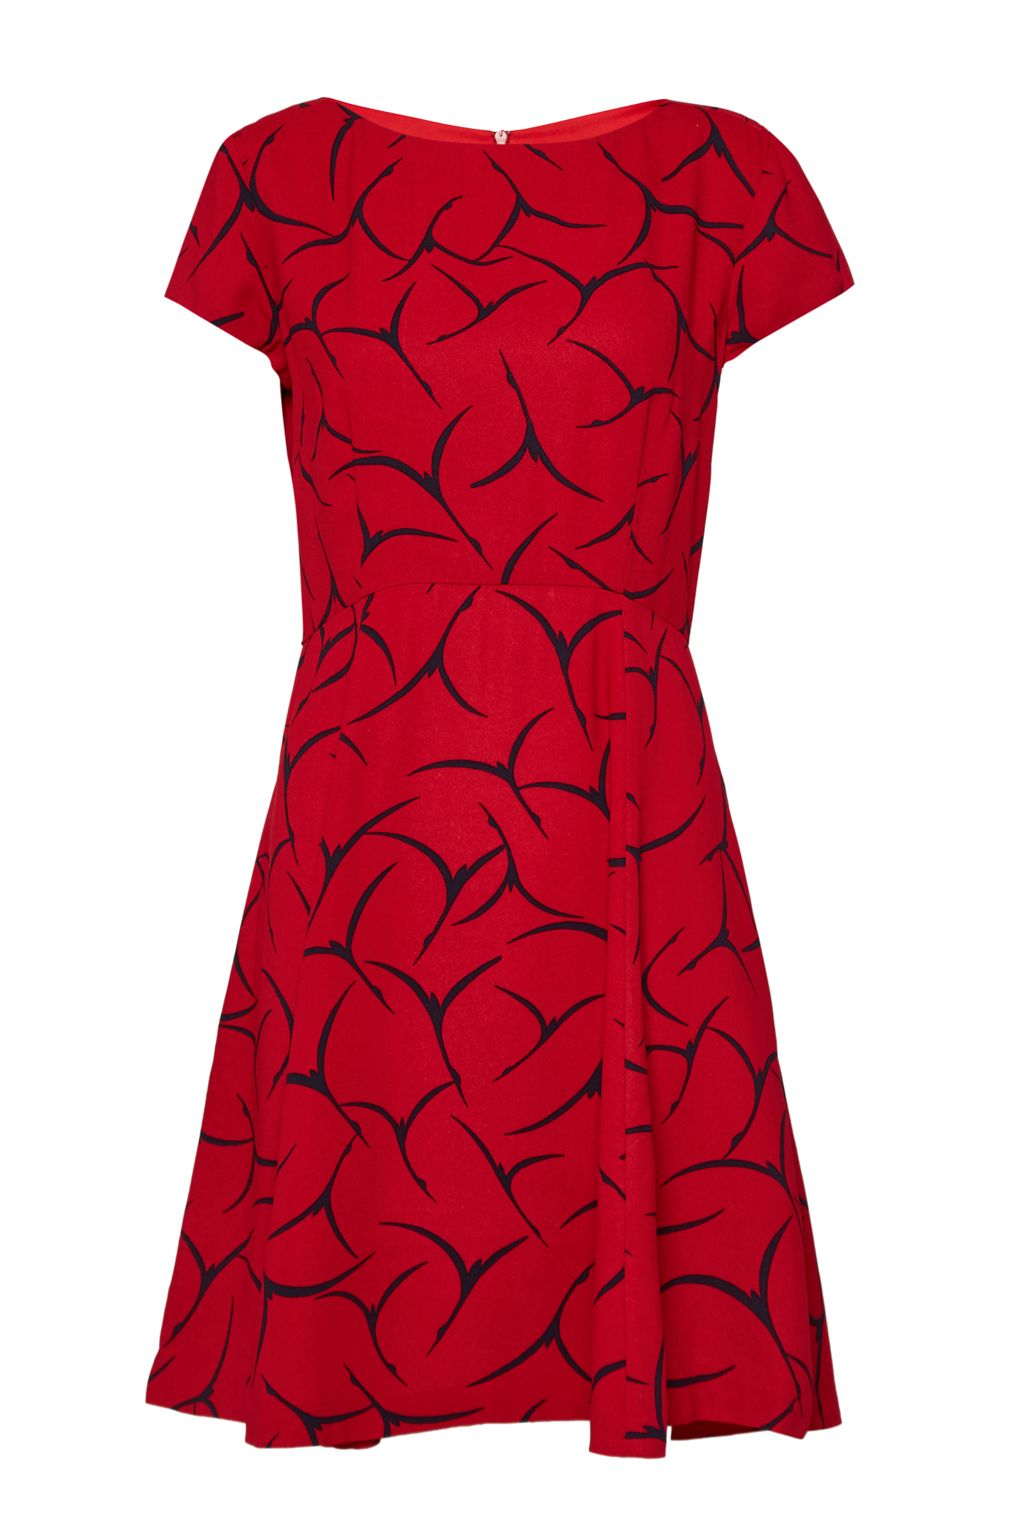 French Connection Rosalind Drape Fit and Flare Dress, Red